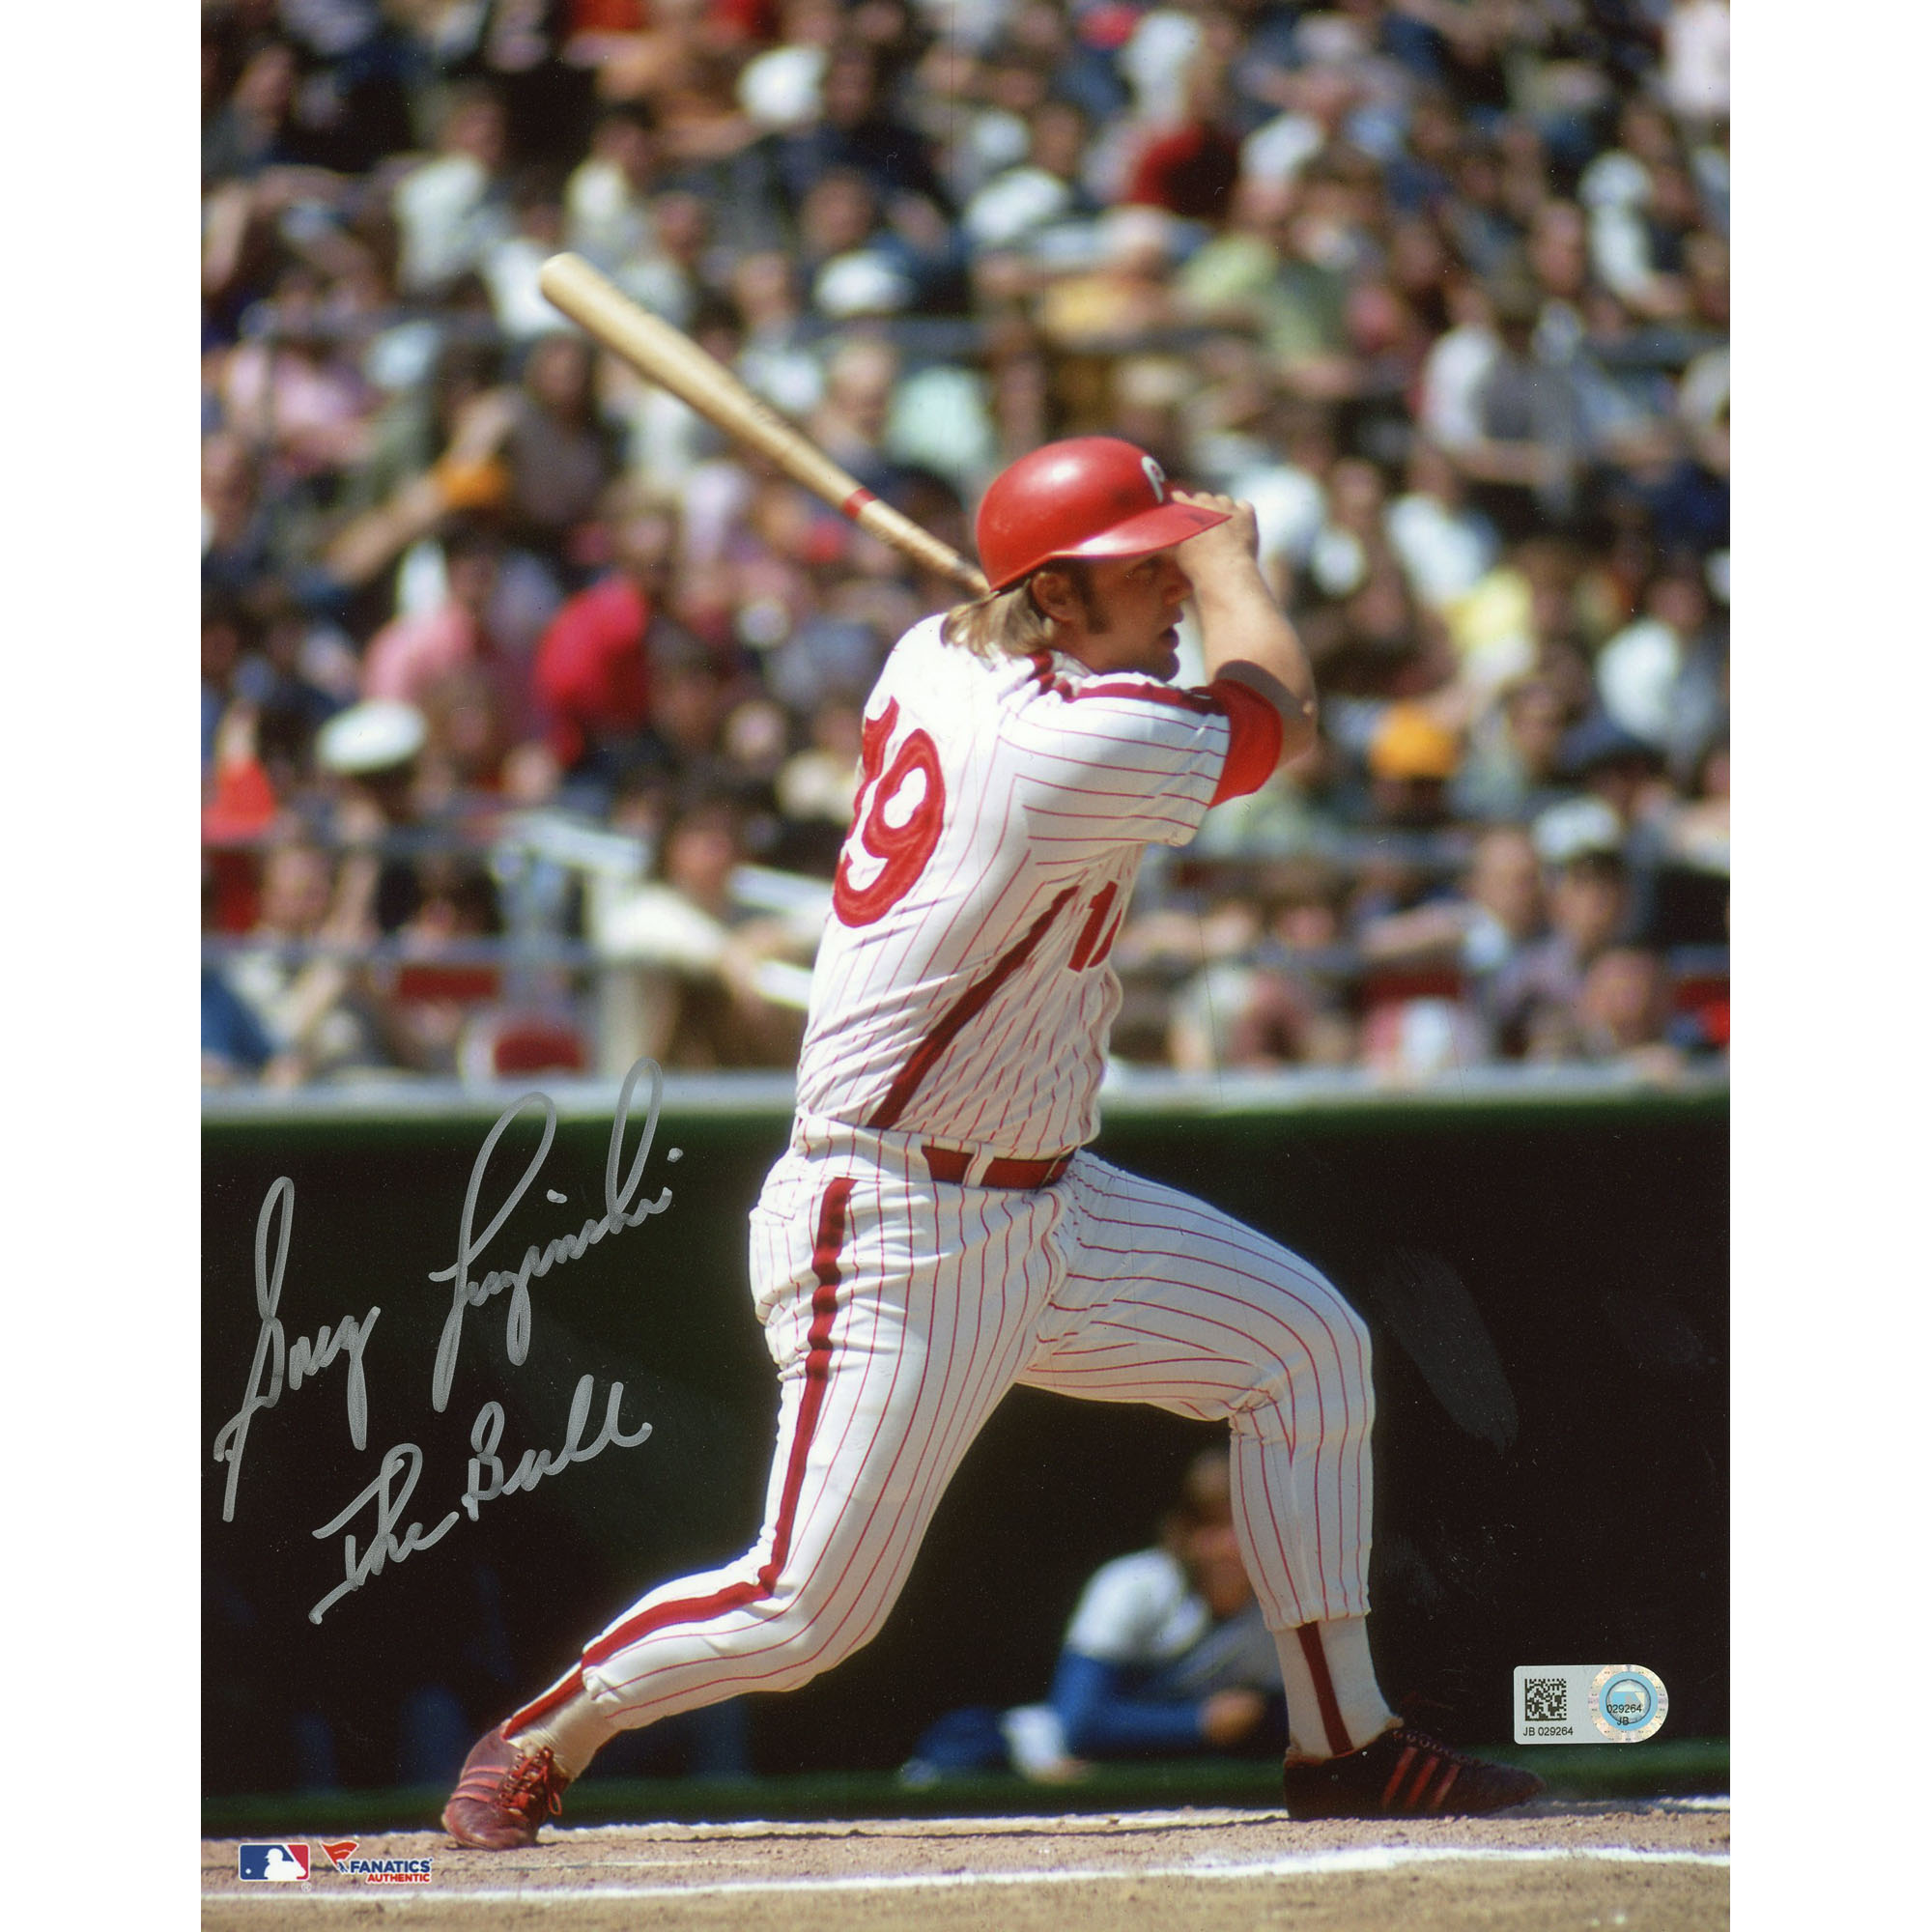 "Greg Luzinski Philadelphia Phillies Fanatics Authentic Autographed 8"" x 10"" White Swinging Photograph with The Bull Inscription - No Size"